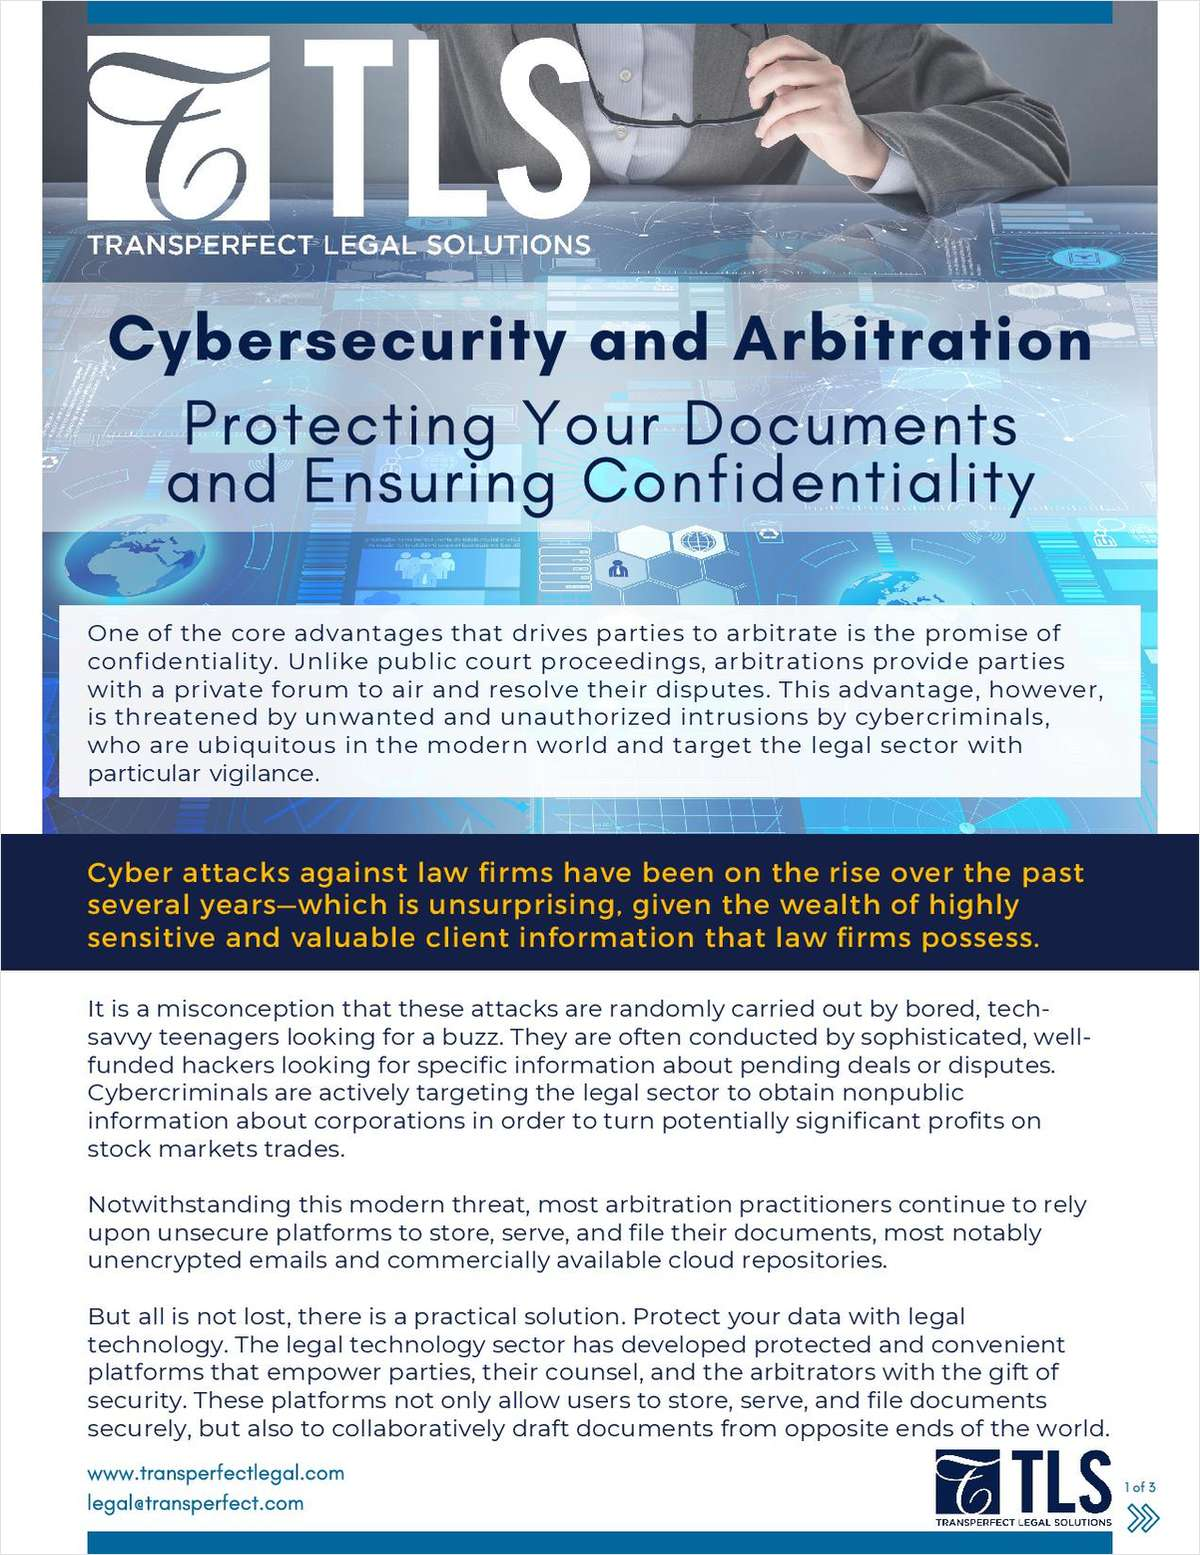 Cybersecurity and Arbitration: Protecting Your Documents and Ensuring Confidentiality